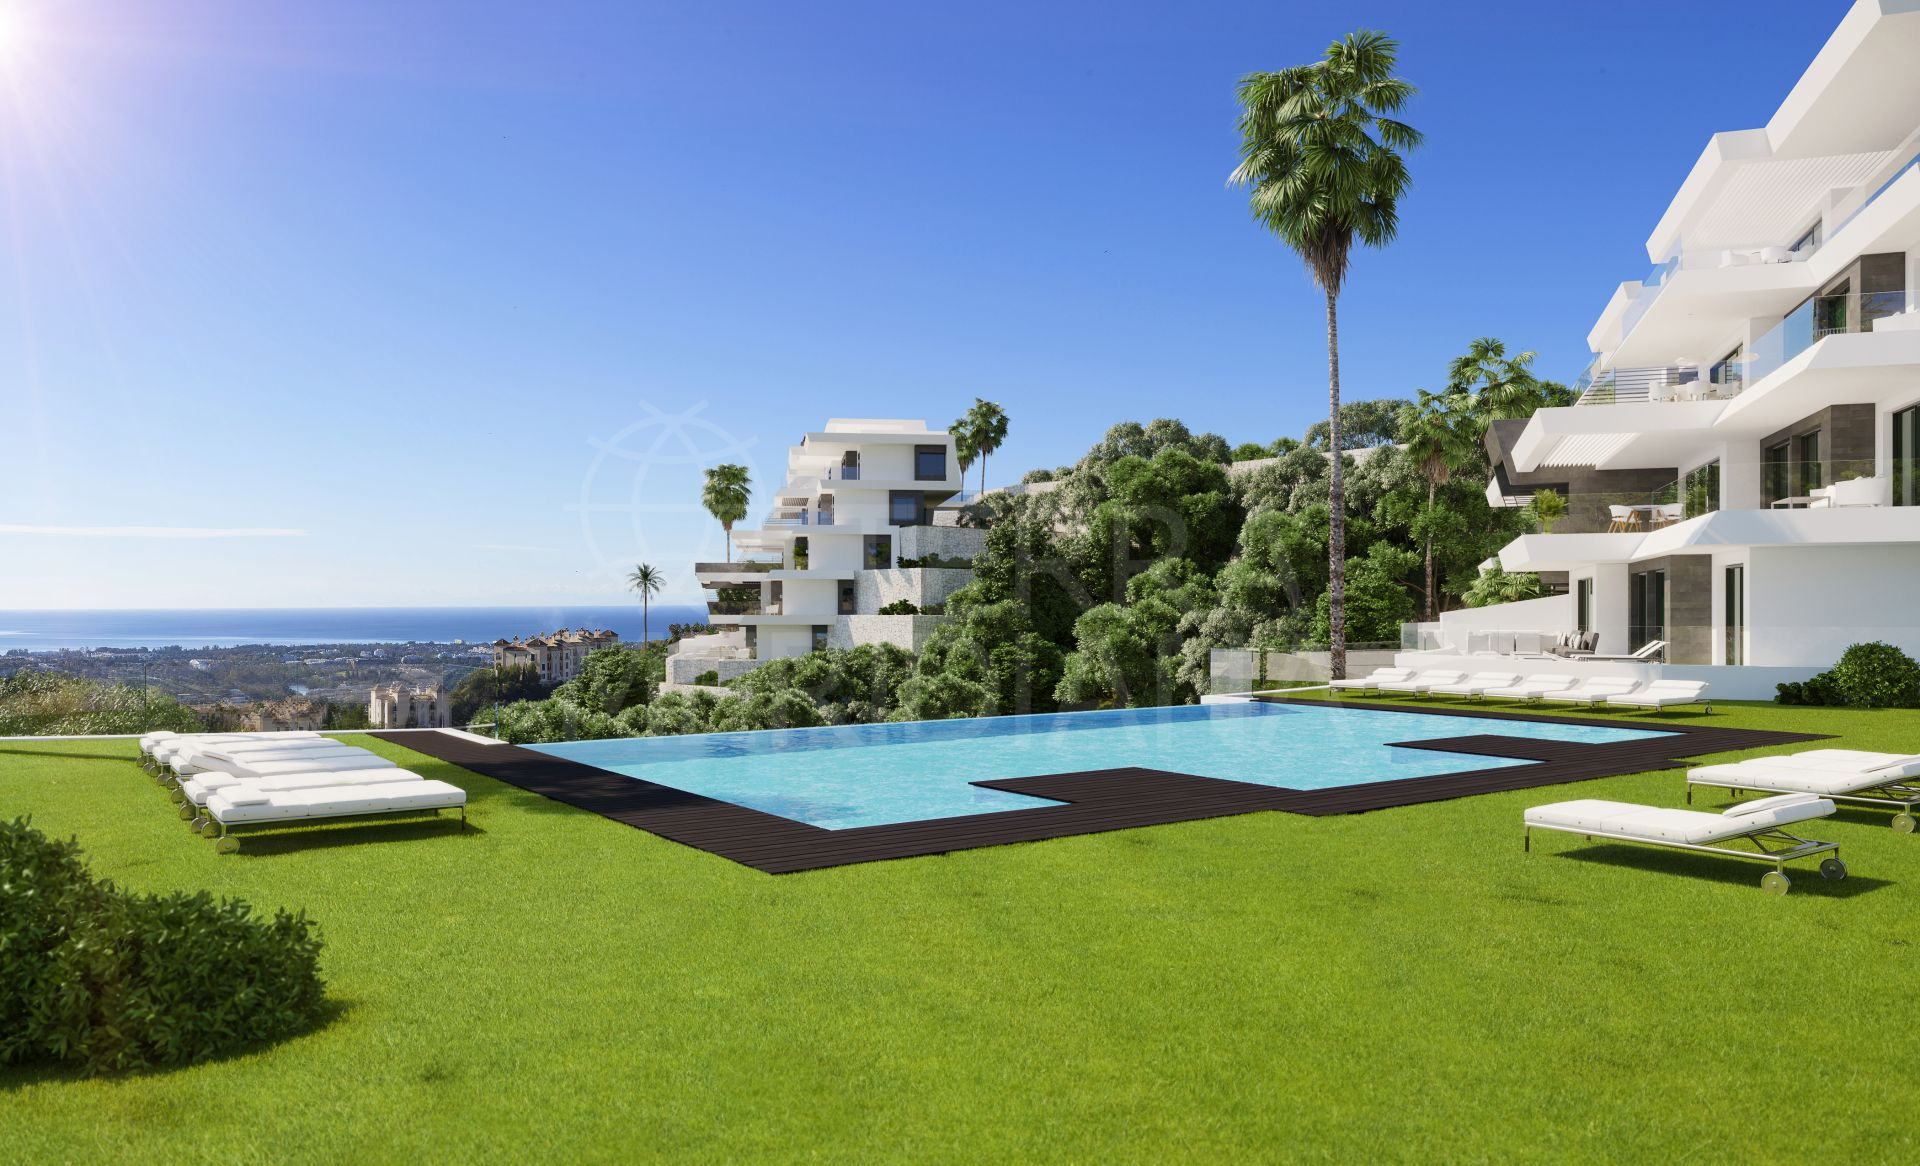 Off plan contemporary 3 bedroom penthouse apartment with extraordinary views for sale in BYU Hills, Benahavis